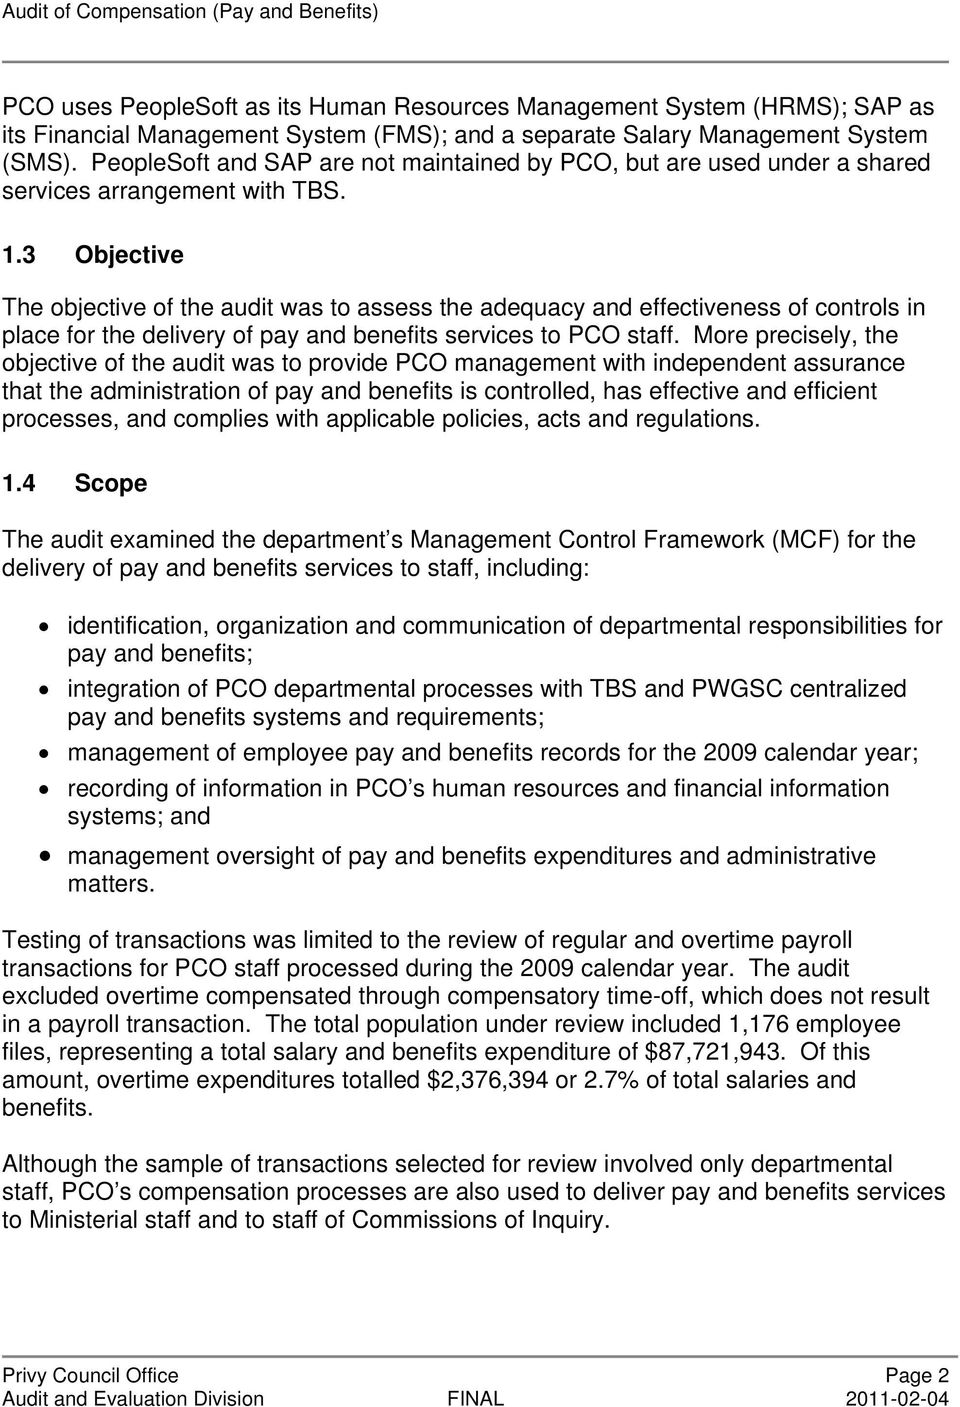 3 Objective The objective of the audit was to assess the adequacy and effectiveness of controls in place for the delivery of pay and benefits services to PCO staff.